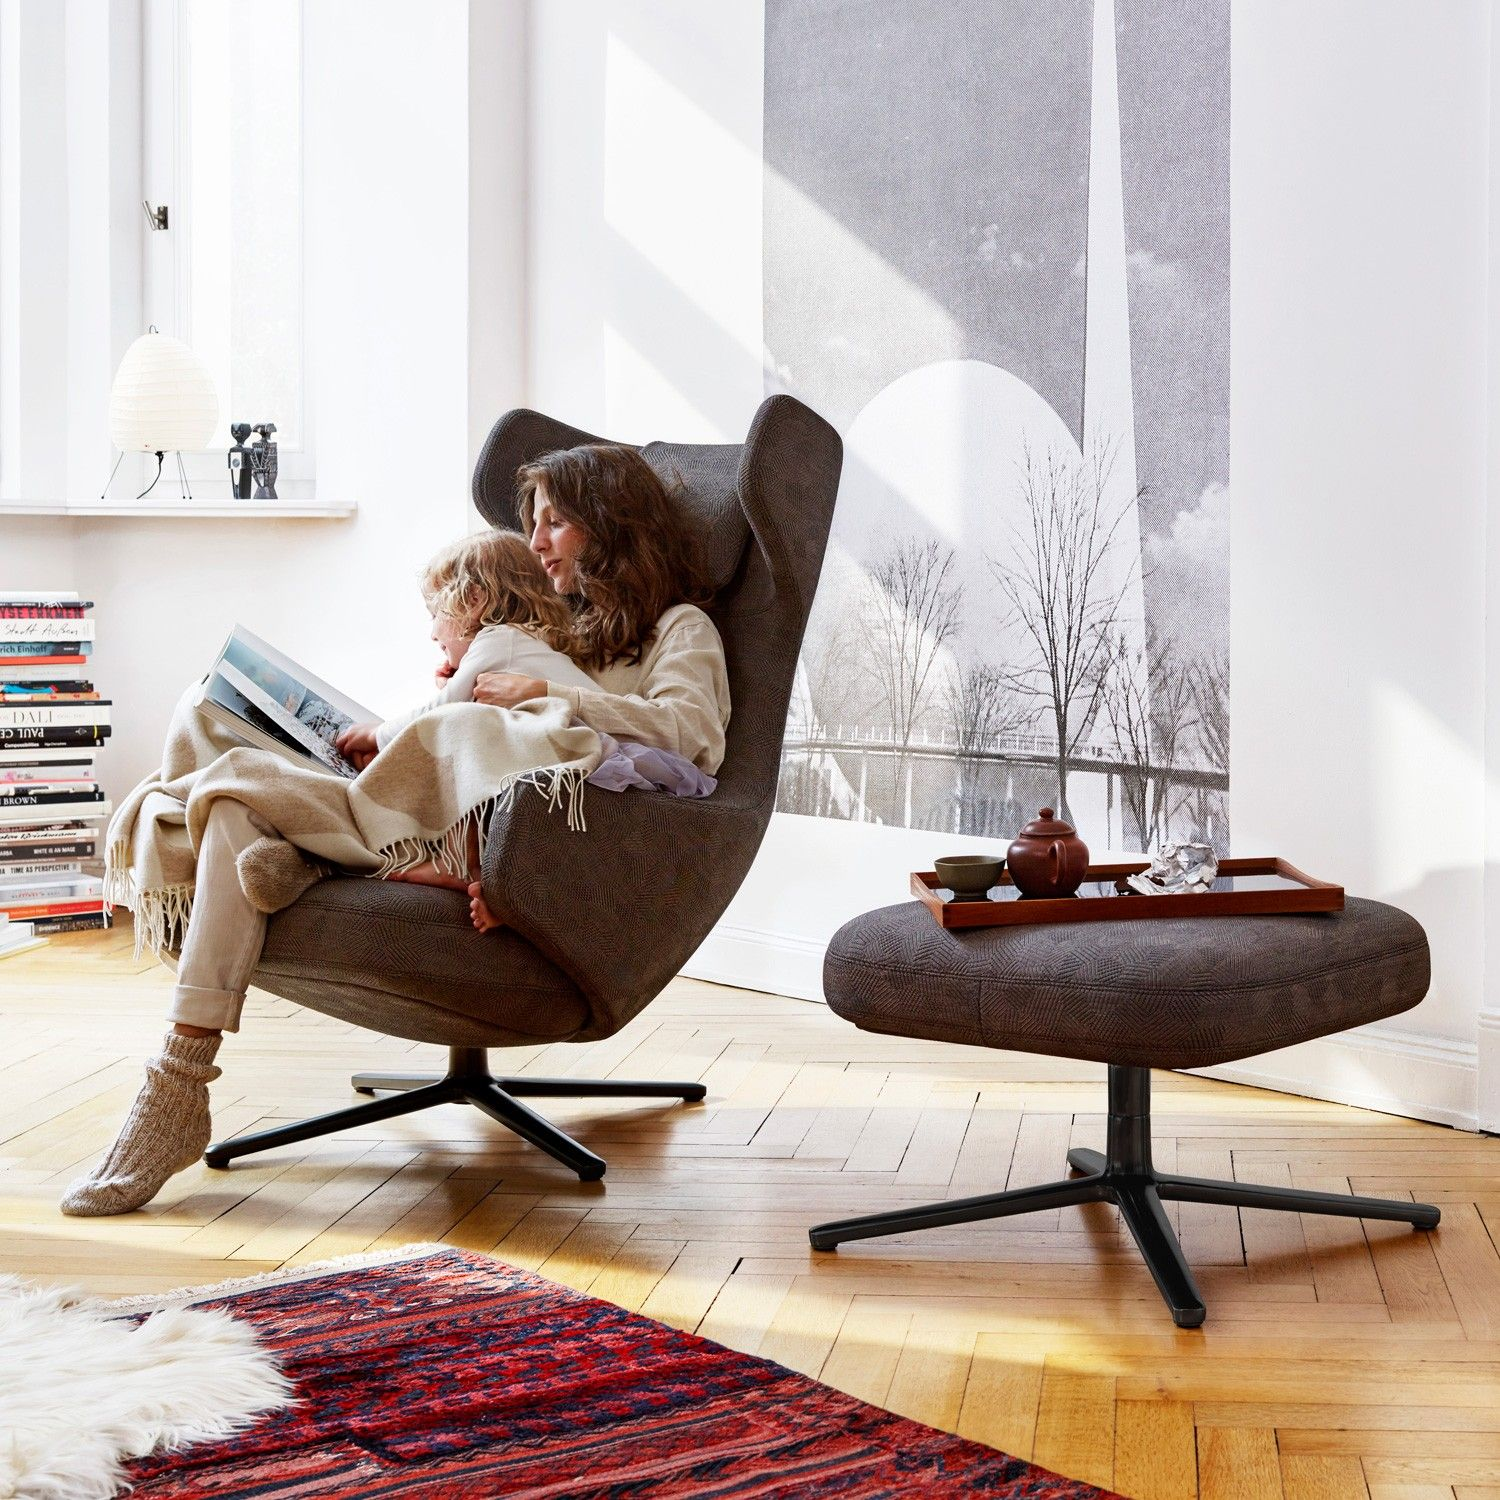 Grand Repos & Ottoman by Antonio Citterio for Vitra is a stunning winged head rest lounge chair with ac panying ottoman for the ultimate in luxury